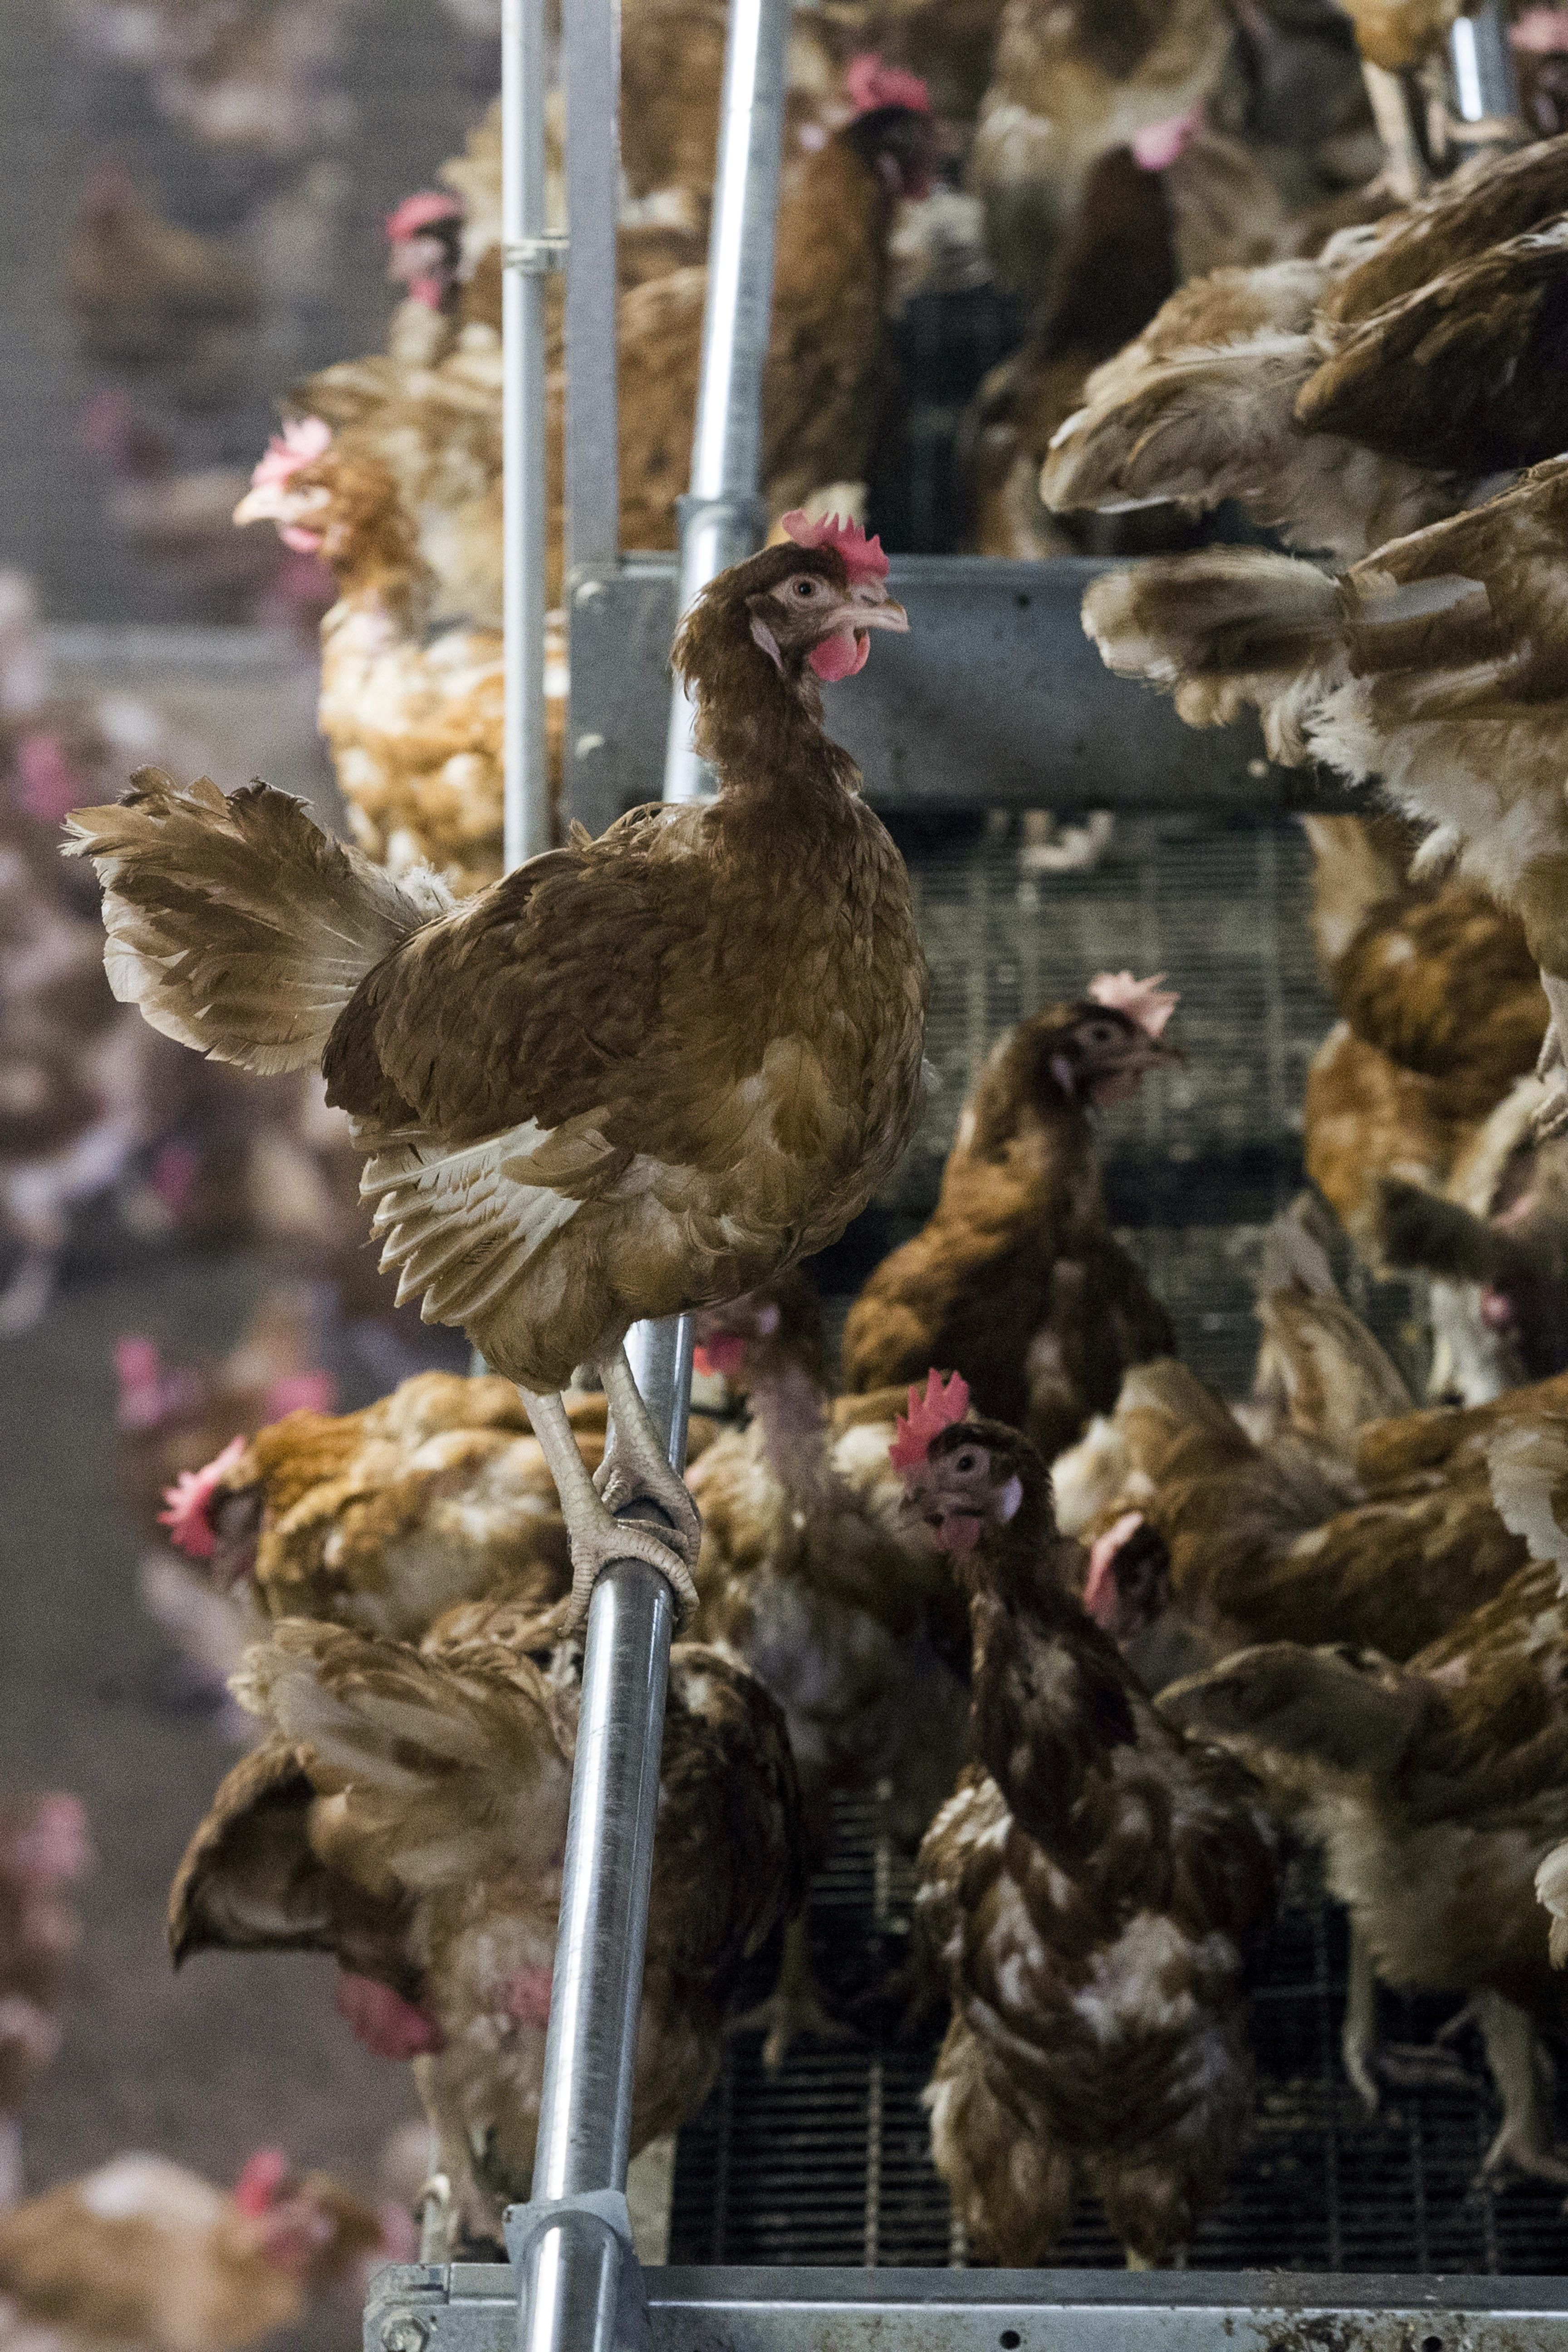 NETHERLANDS-ANIMALS-AGRICULTURE-HEALTH-BIRD-FLU